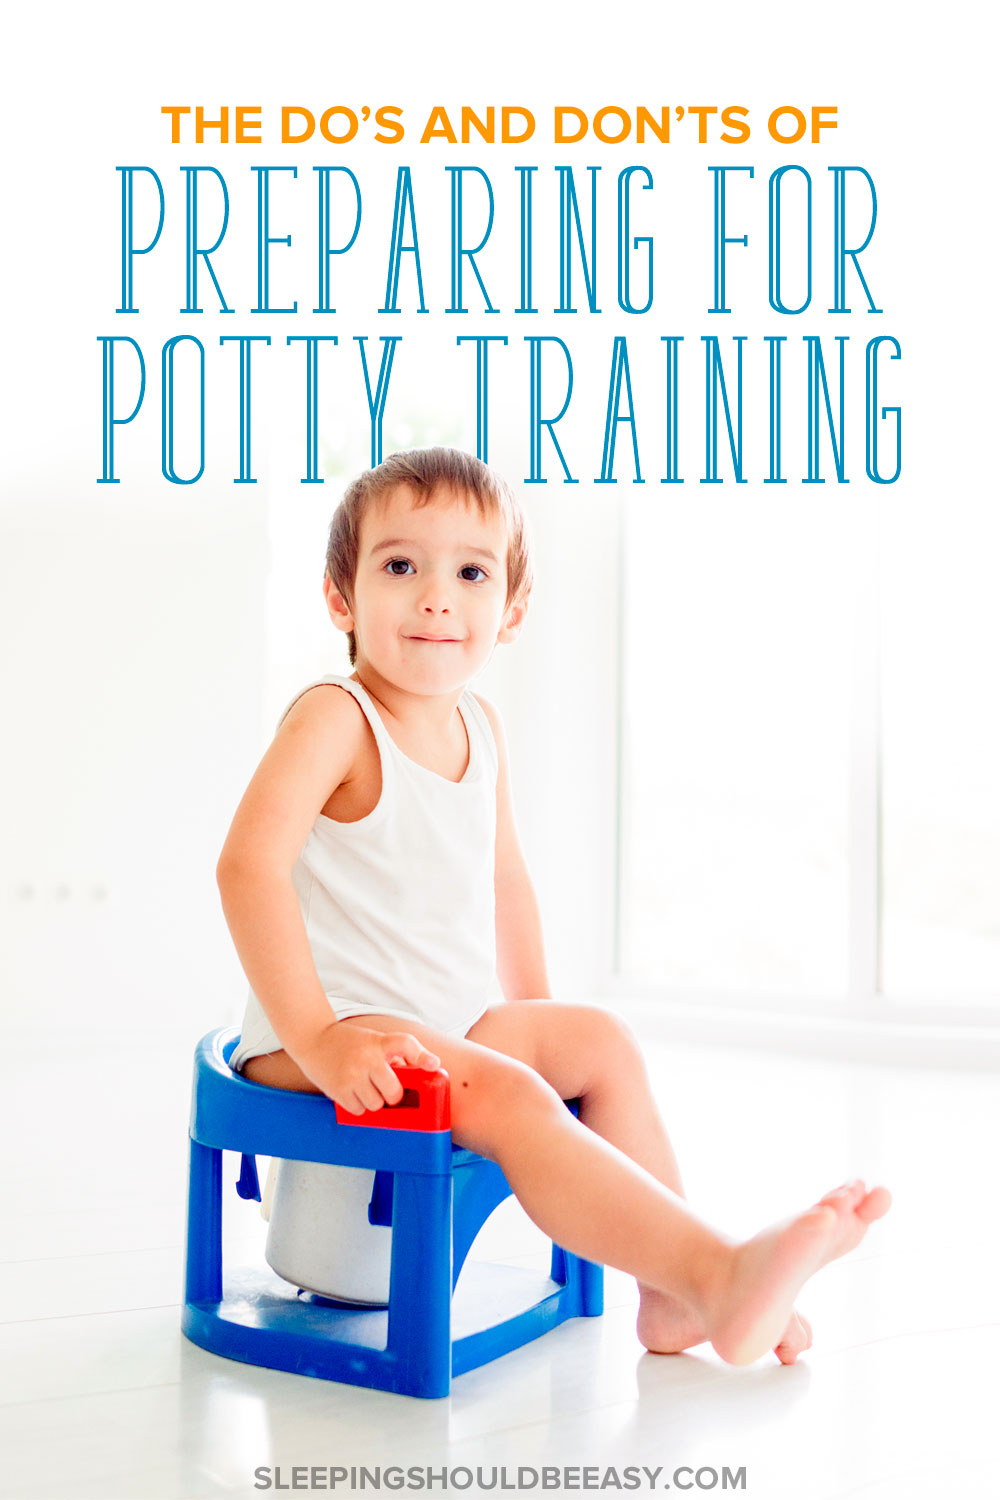 Ready to get started with teaching your child to use the potty? Learn what to do (and not do!) when preparing for potty training.